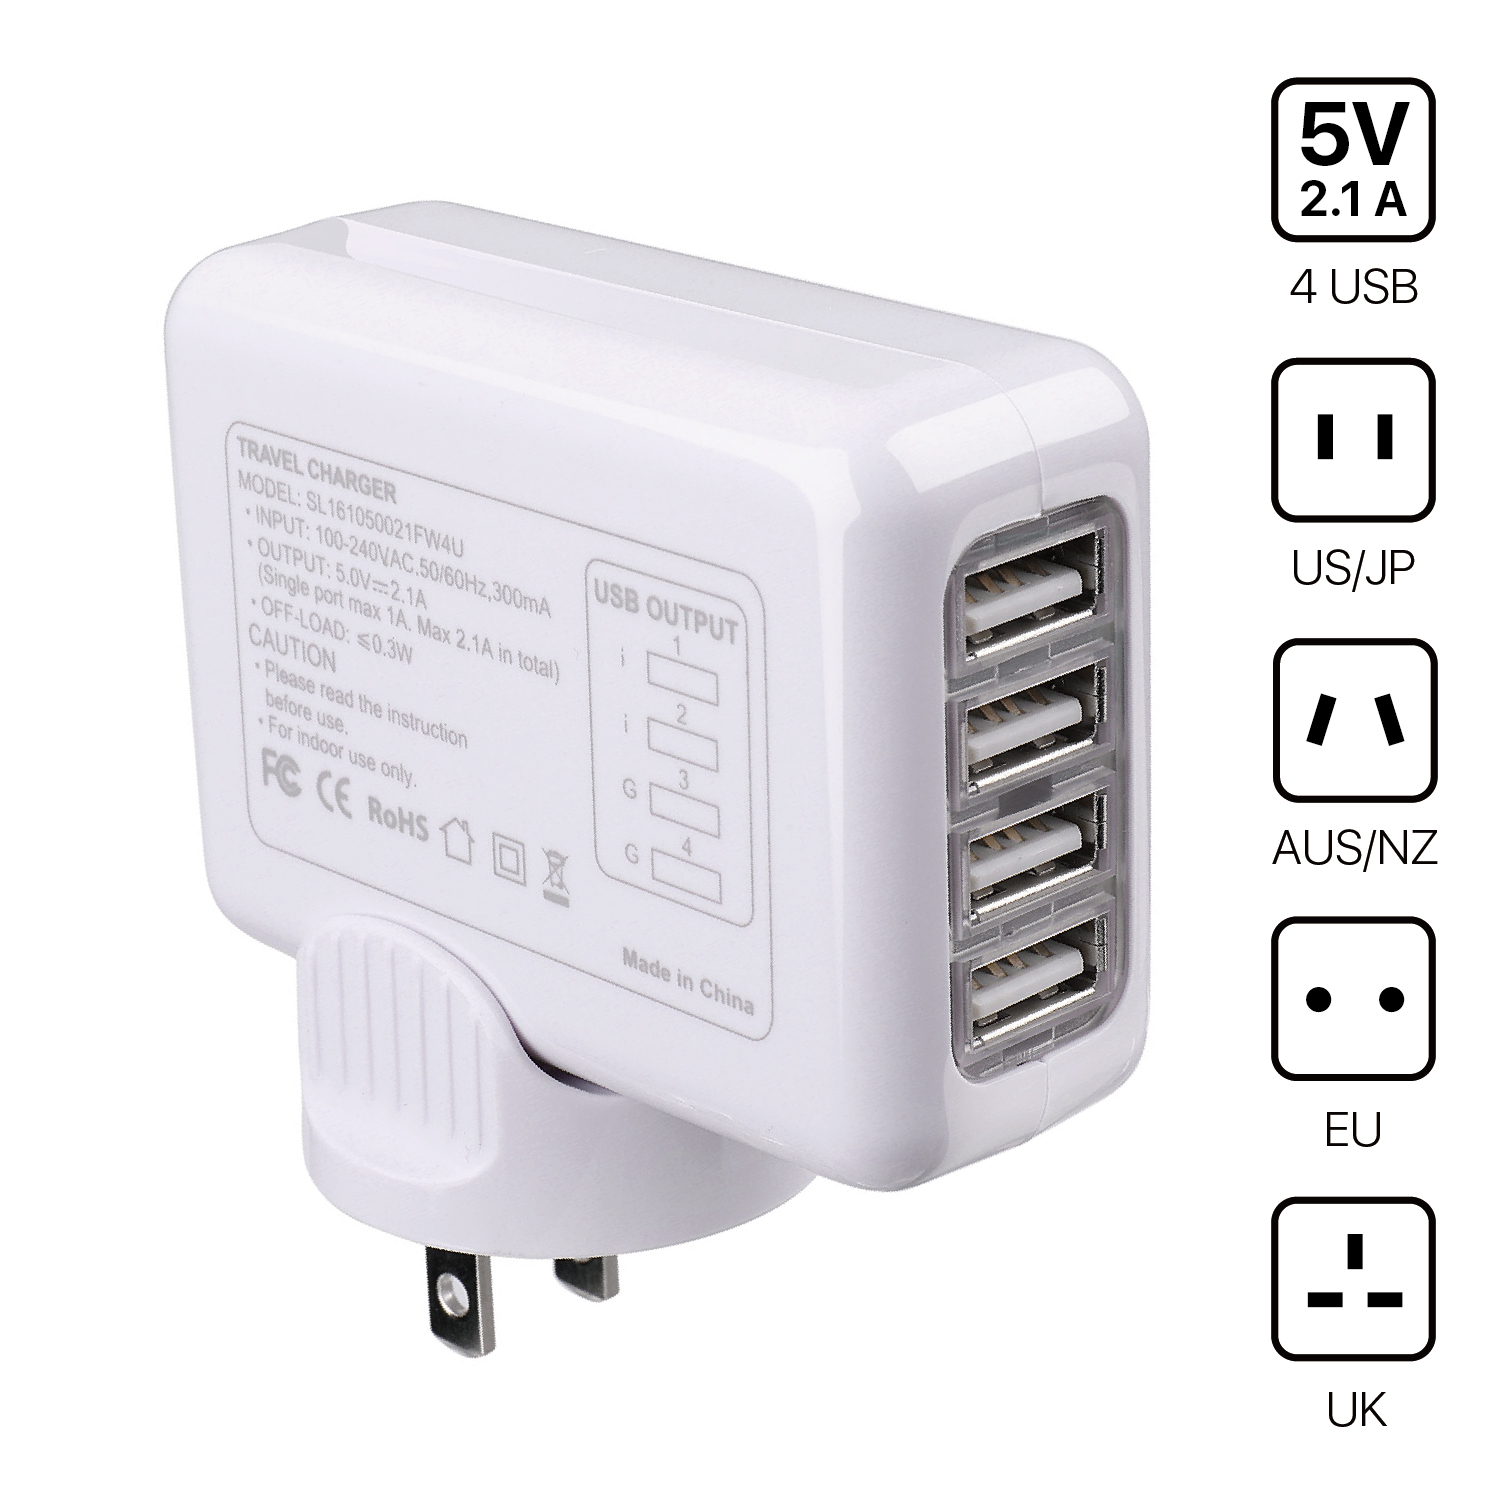 All in One International Universal Power Adapter Converter 2 USB Charging Port